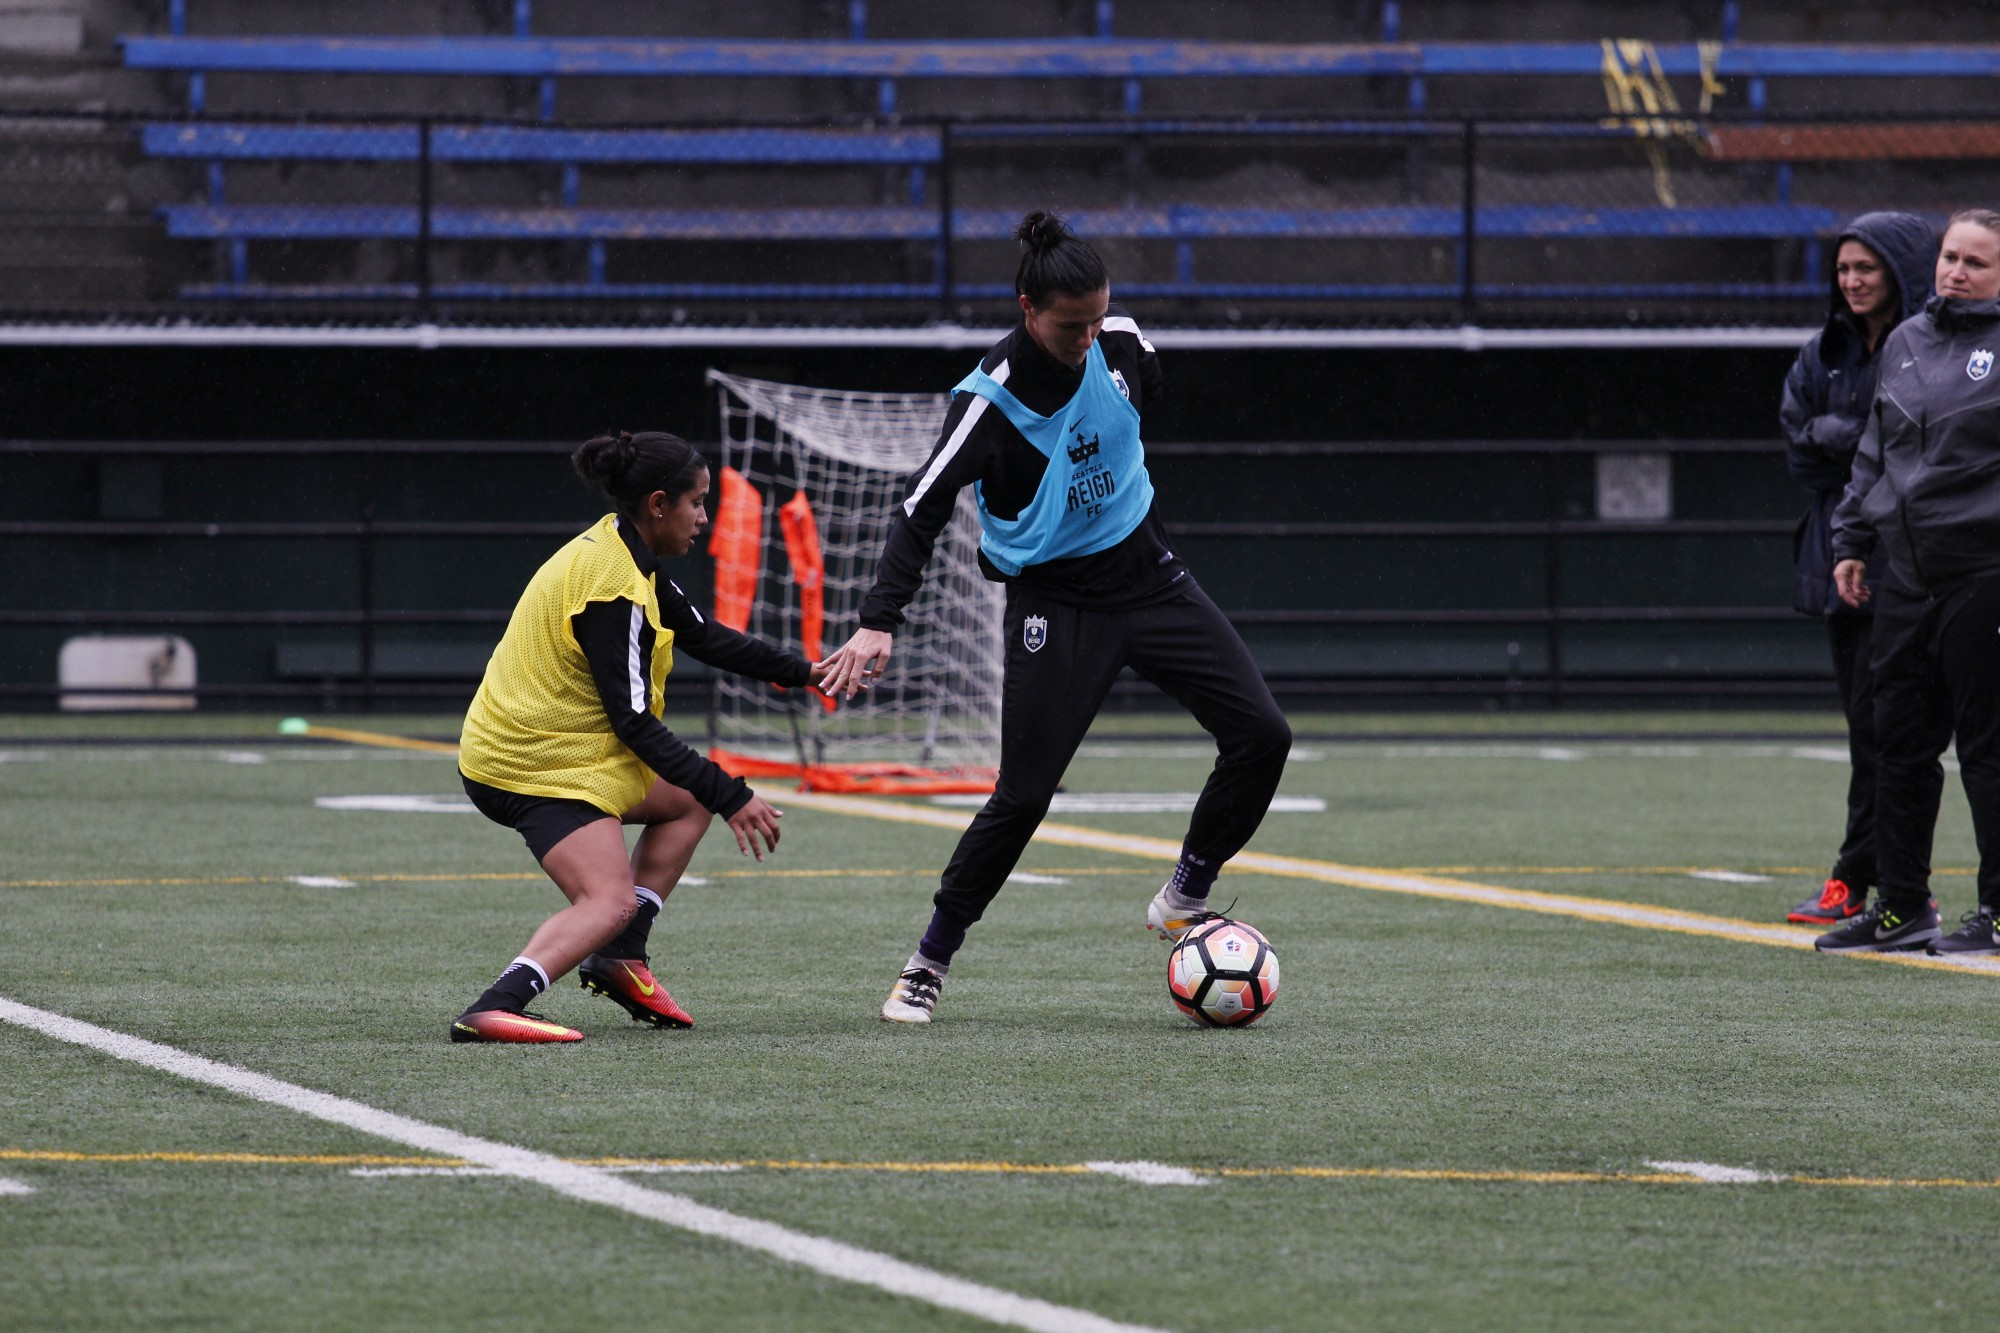 photo essay preseason training camp seattle reign fc present through several drills focusing on small sided matches and quick passing check out some of the favorite photos from the first day back below